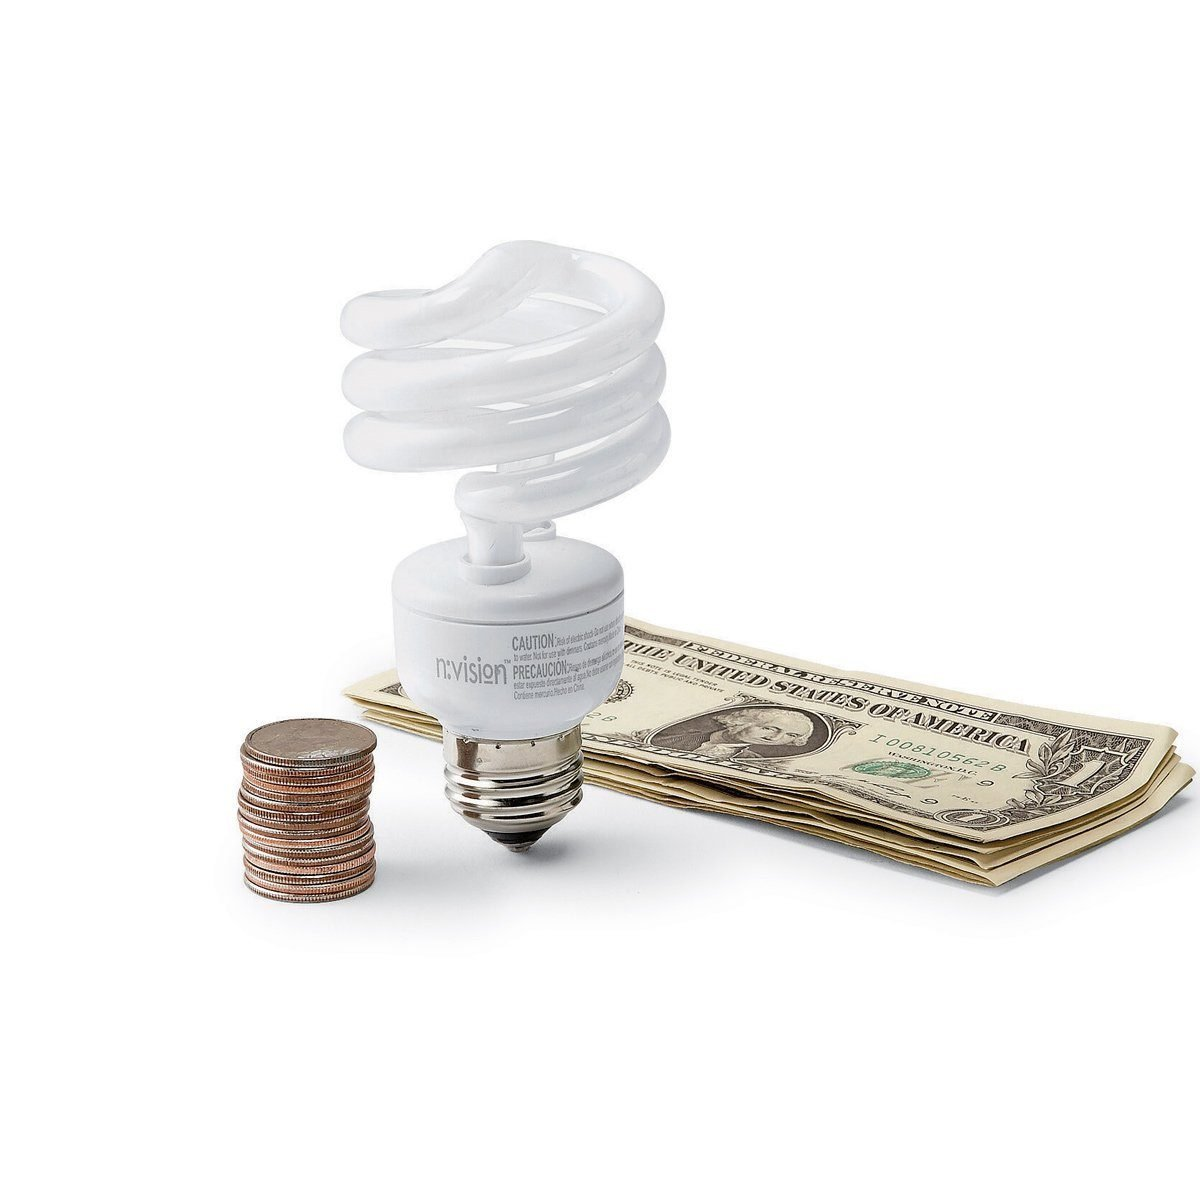 CFL lightbulb between coins and dollar bills